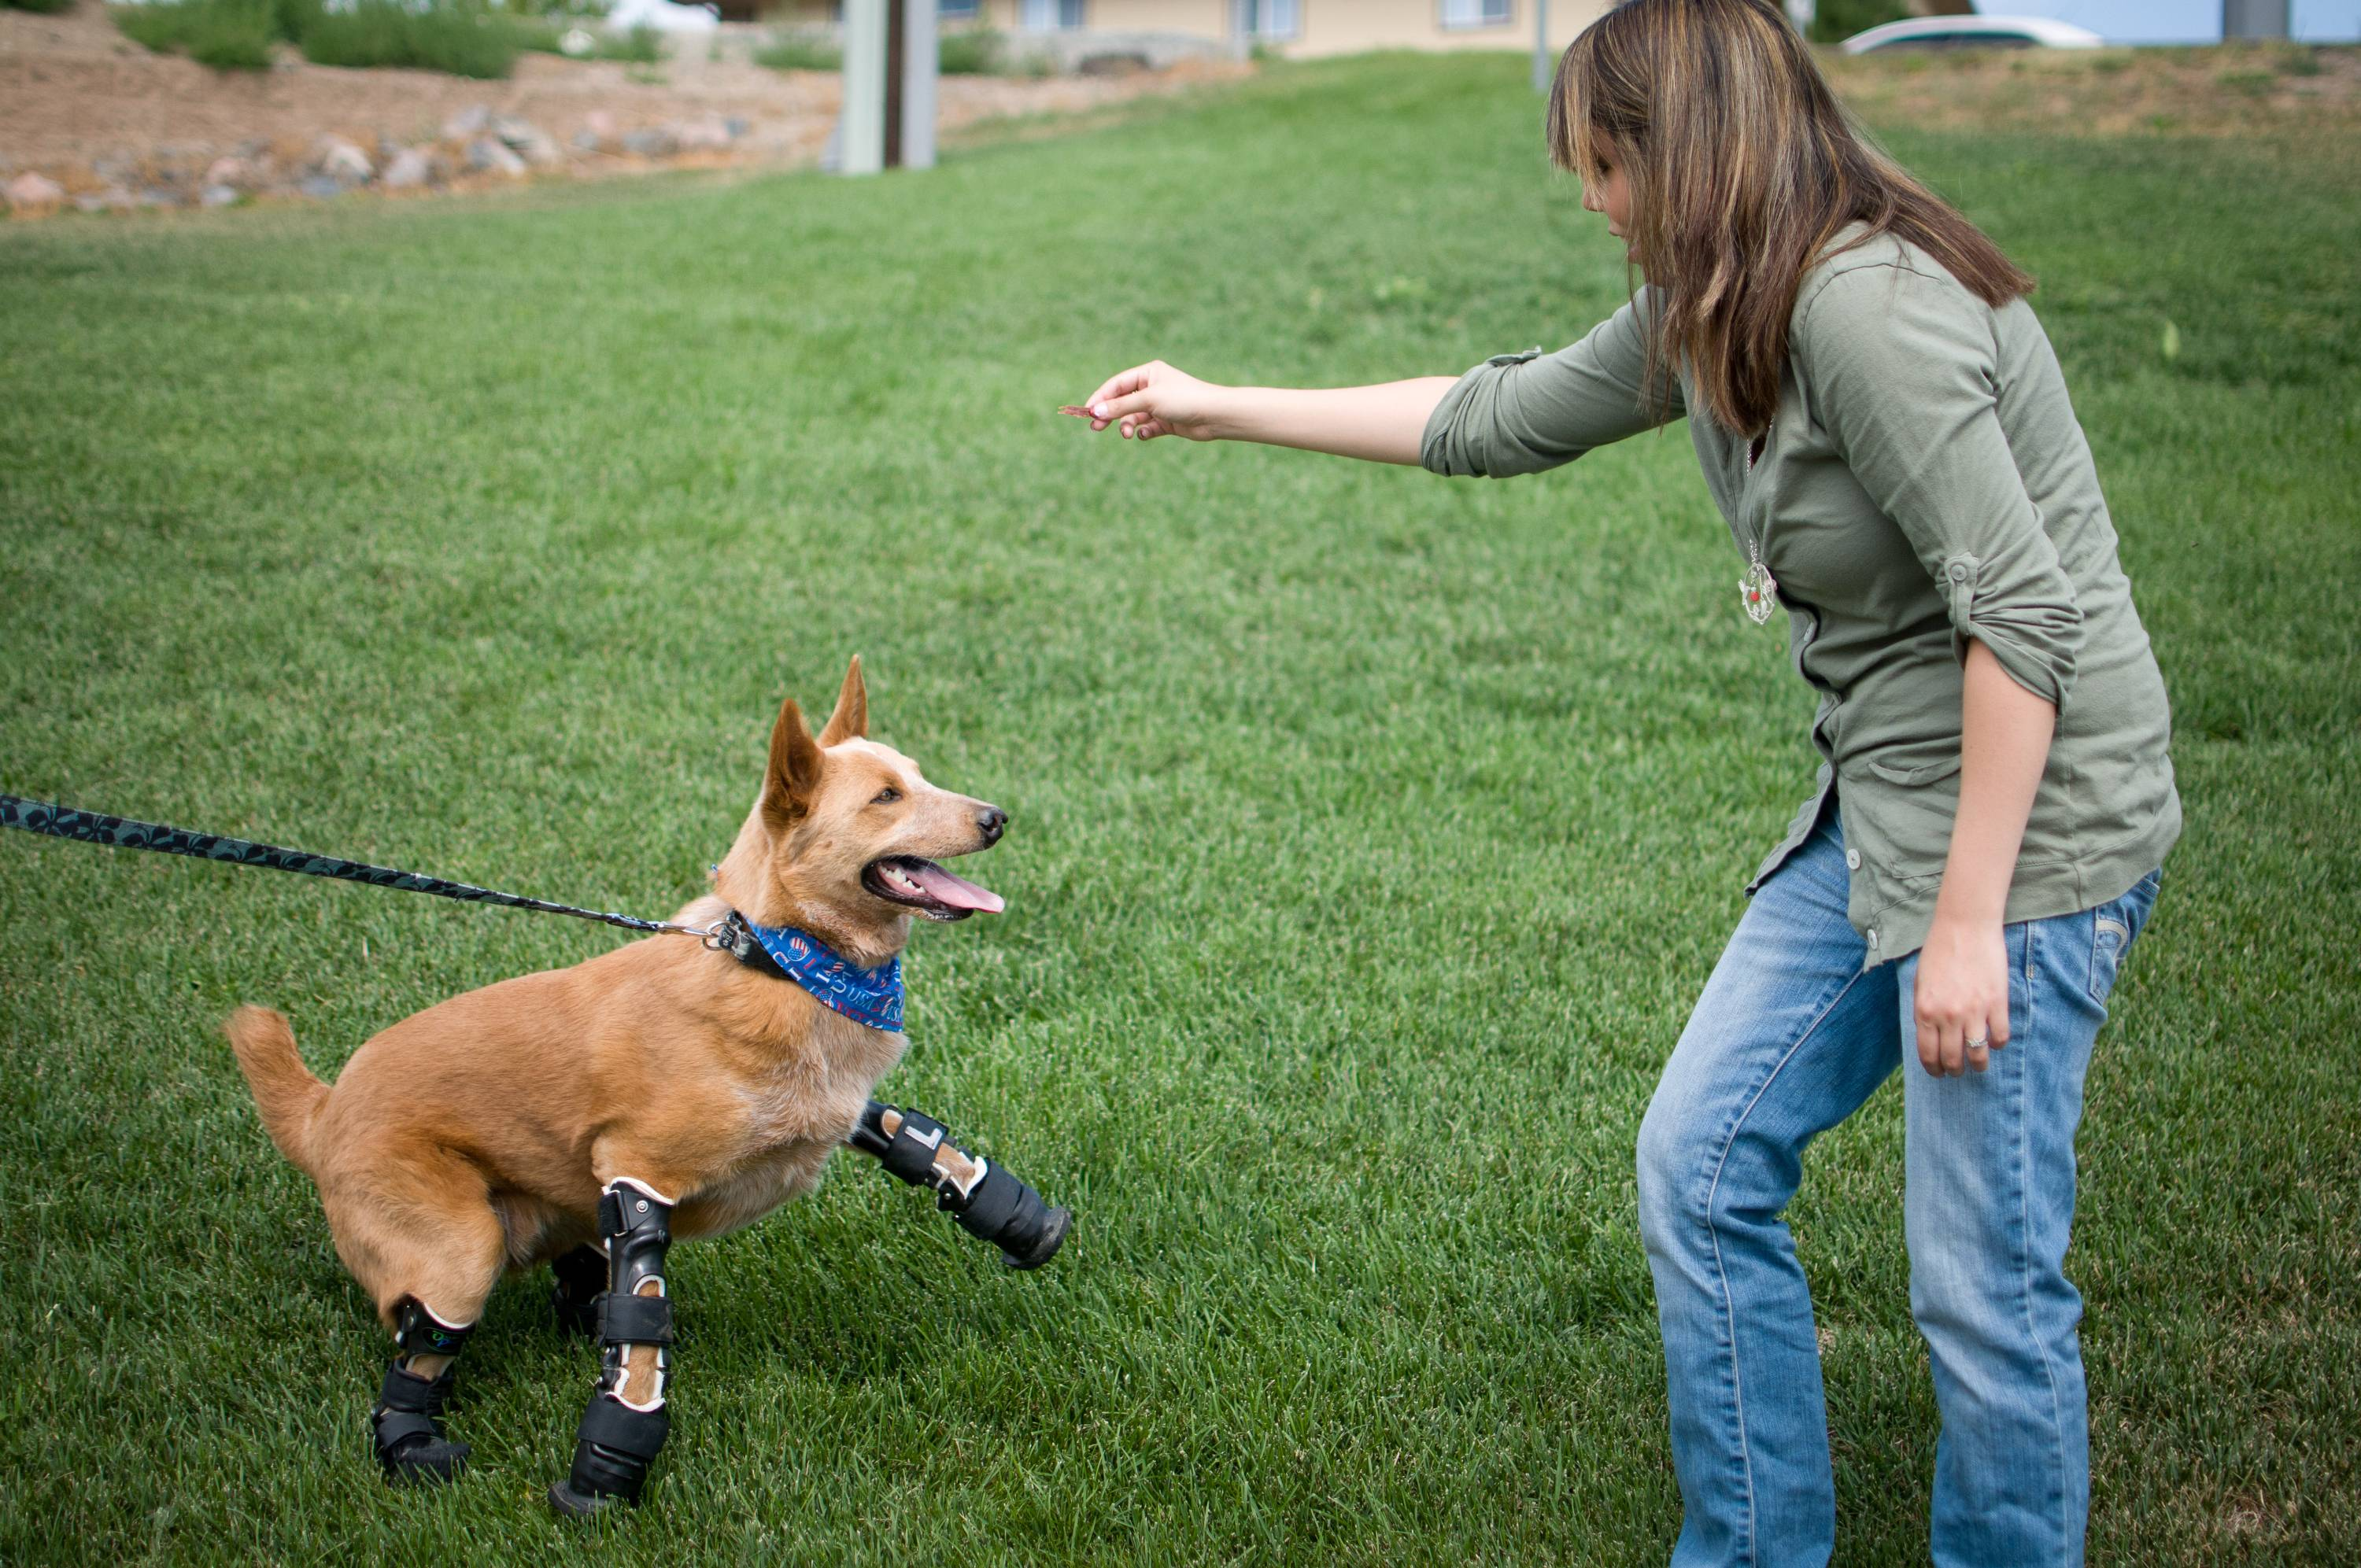 Veterinarian Christie Pace plays with Naki'o, a red heeler mix breed, the first dog to receive four prosthetic limbs. Naki'o was found in the cellar of a Nebraska foreclosed home with all four legs and its tail frozen in puddles of water-turned-ice. What frostbite didn't do, a surgeon did, amputating all four legs and giving him four prosthetics.